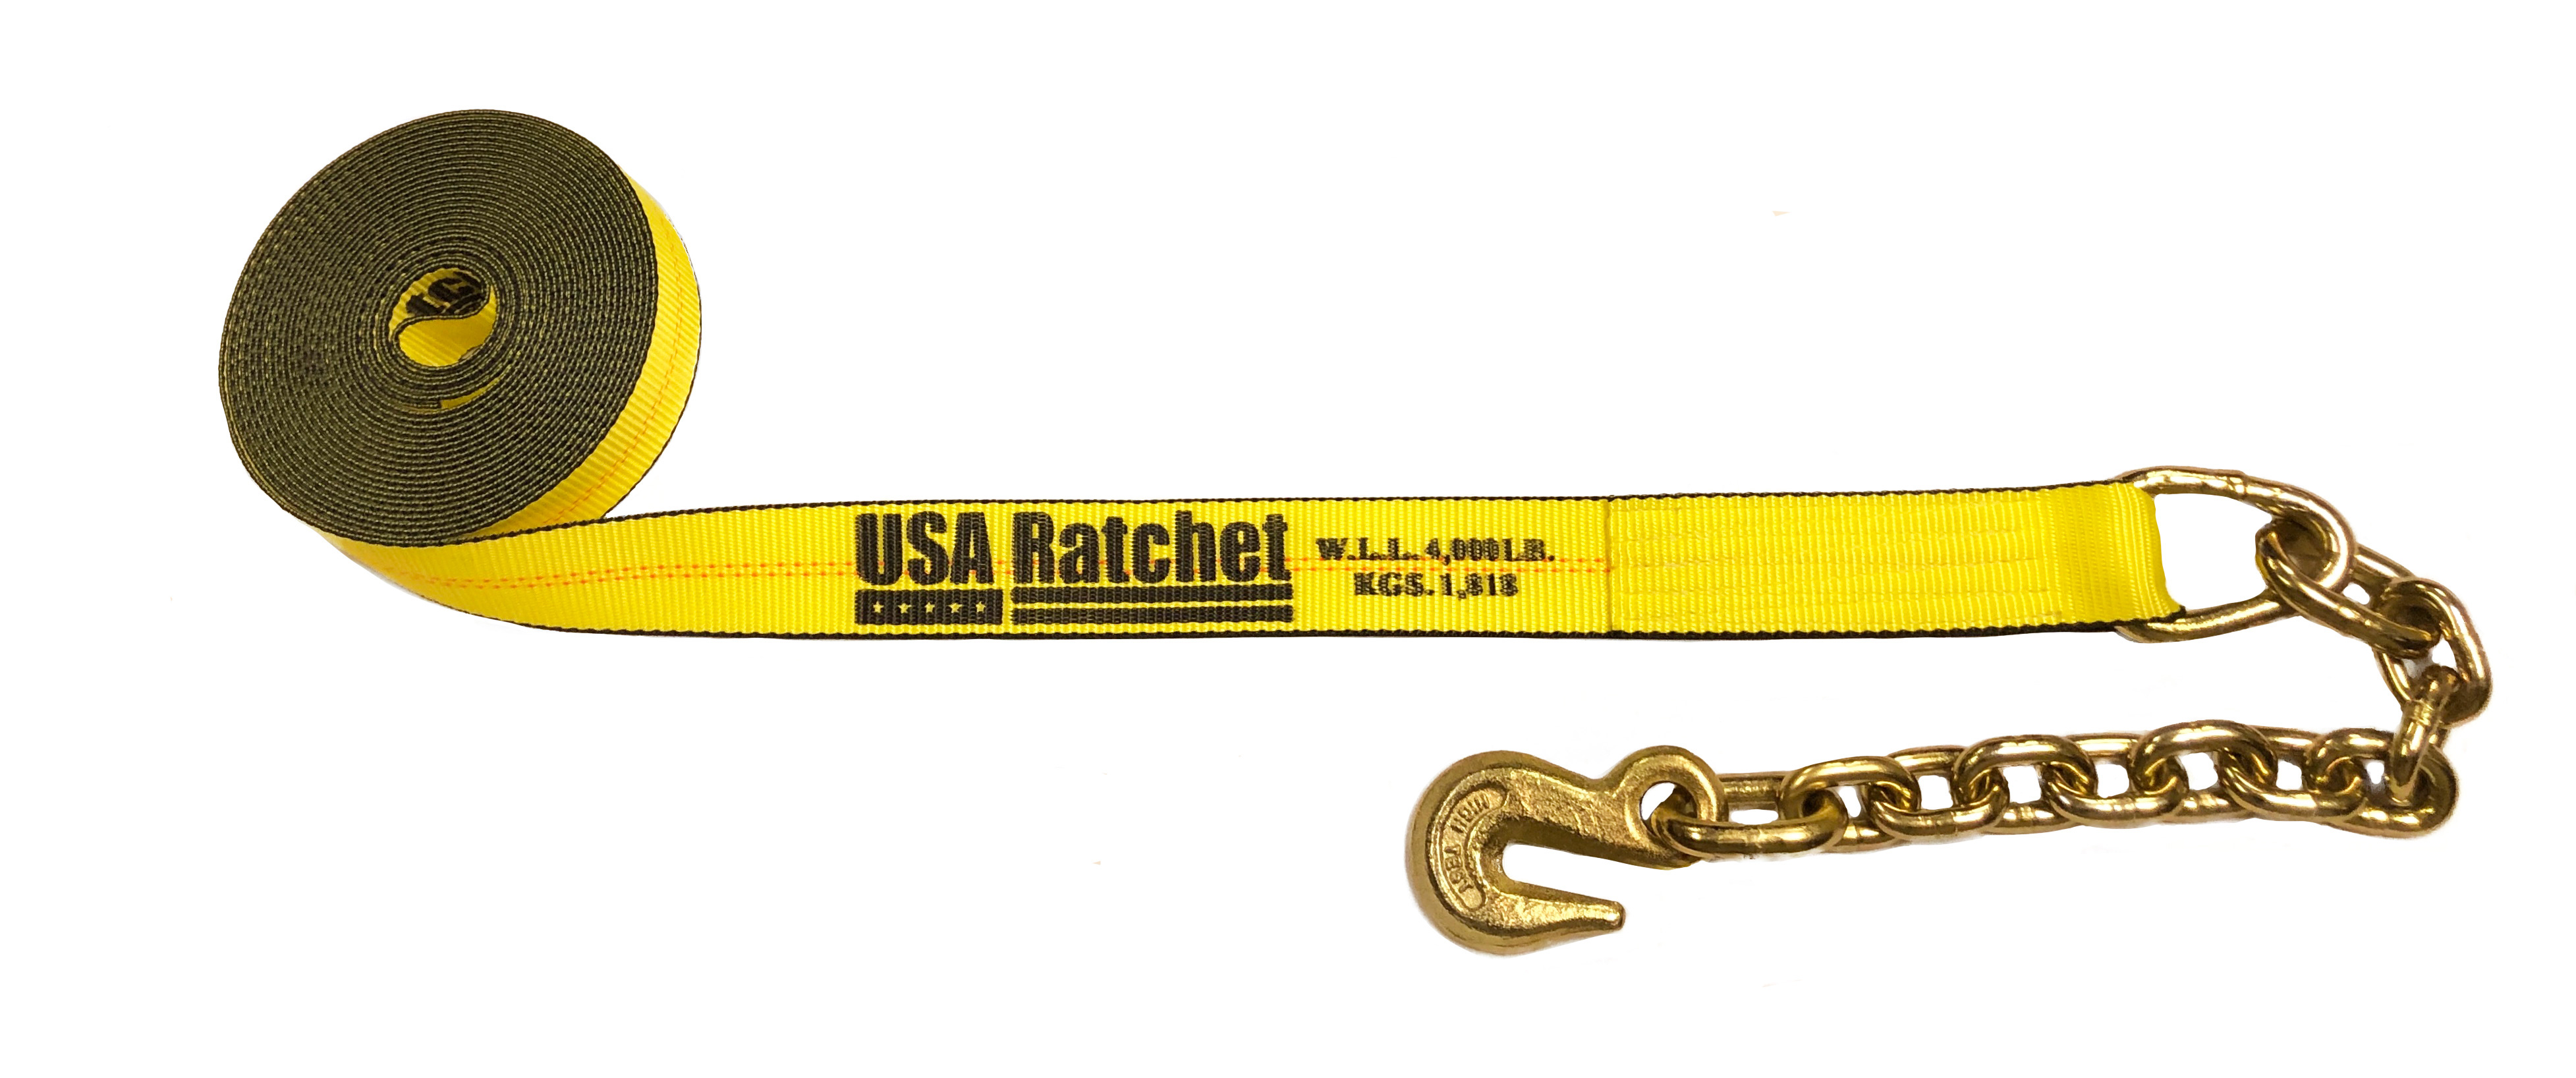 Luggage straps 2 wide security strap,tie down straps assorted colors Made in USA.